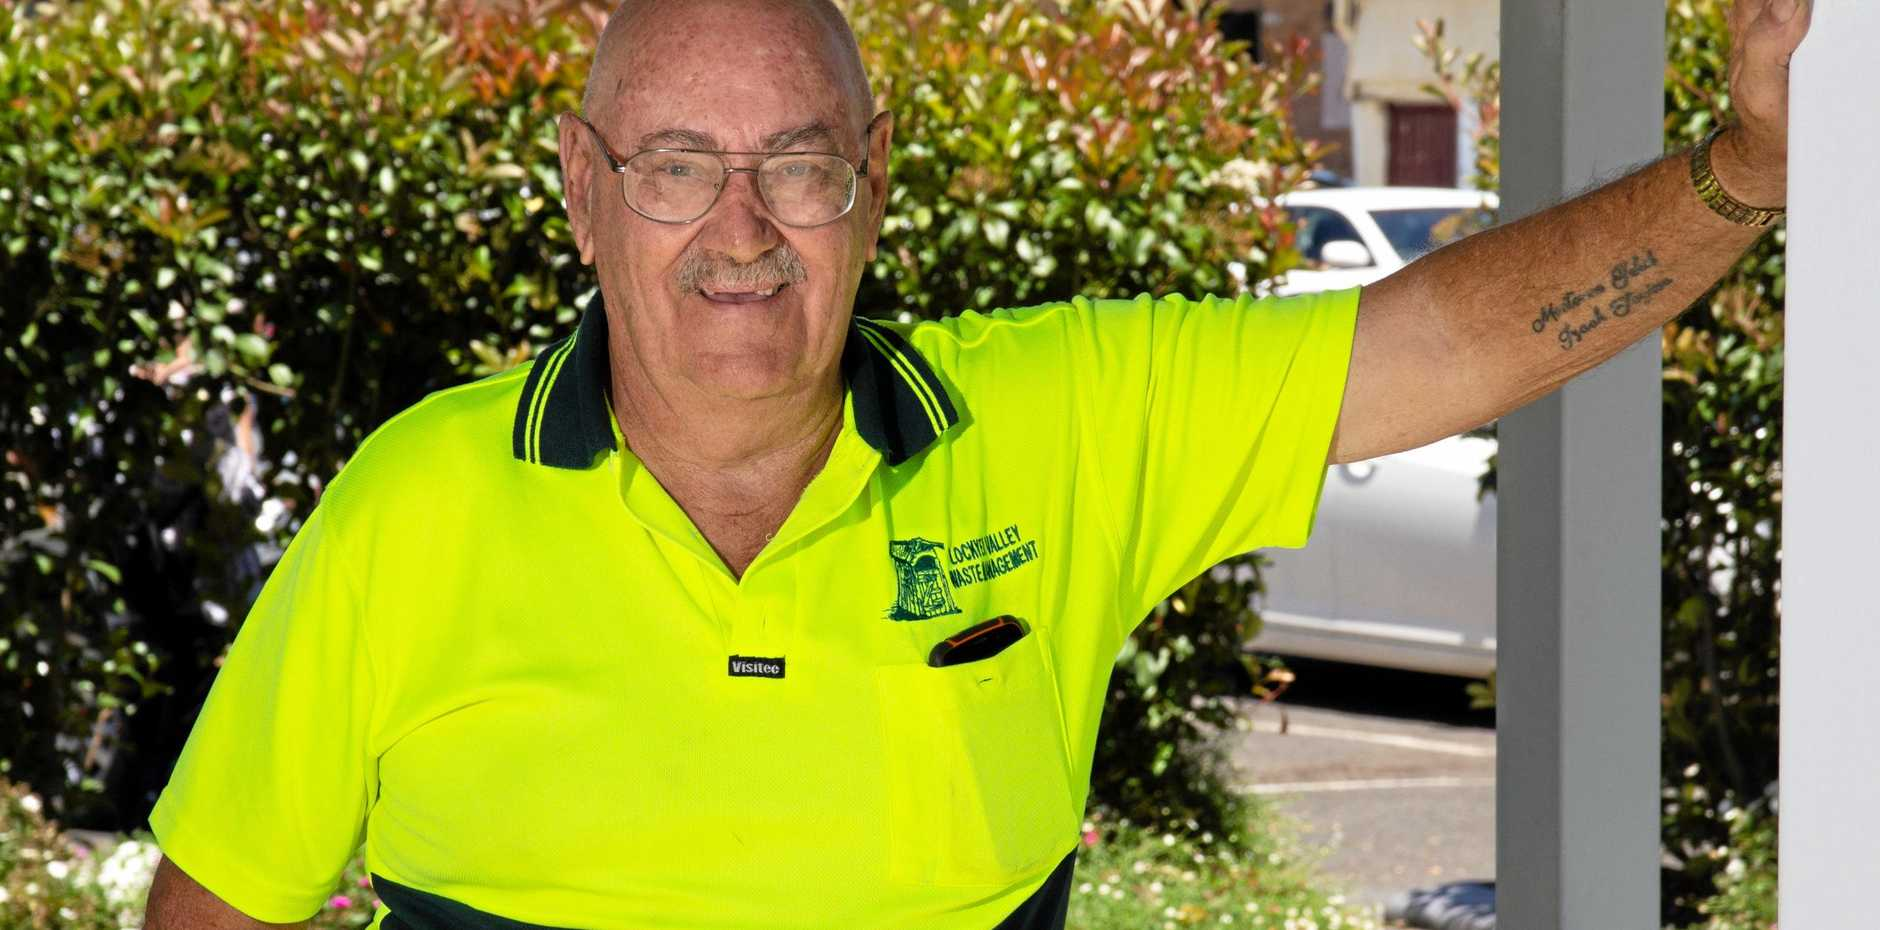 HELPING OUT: Lockyer Valley Waste Management owner John Schollick